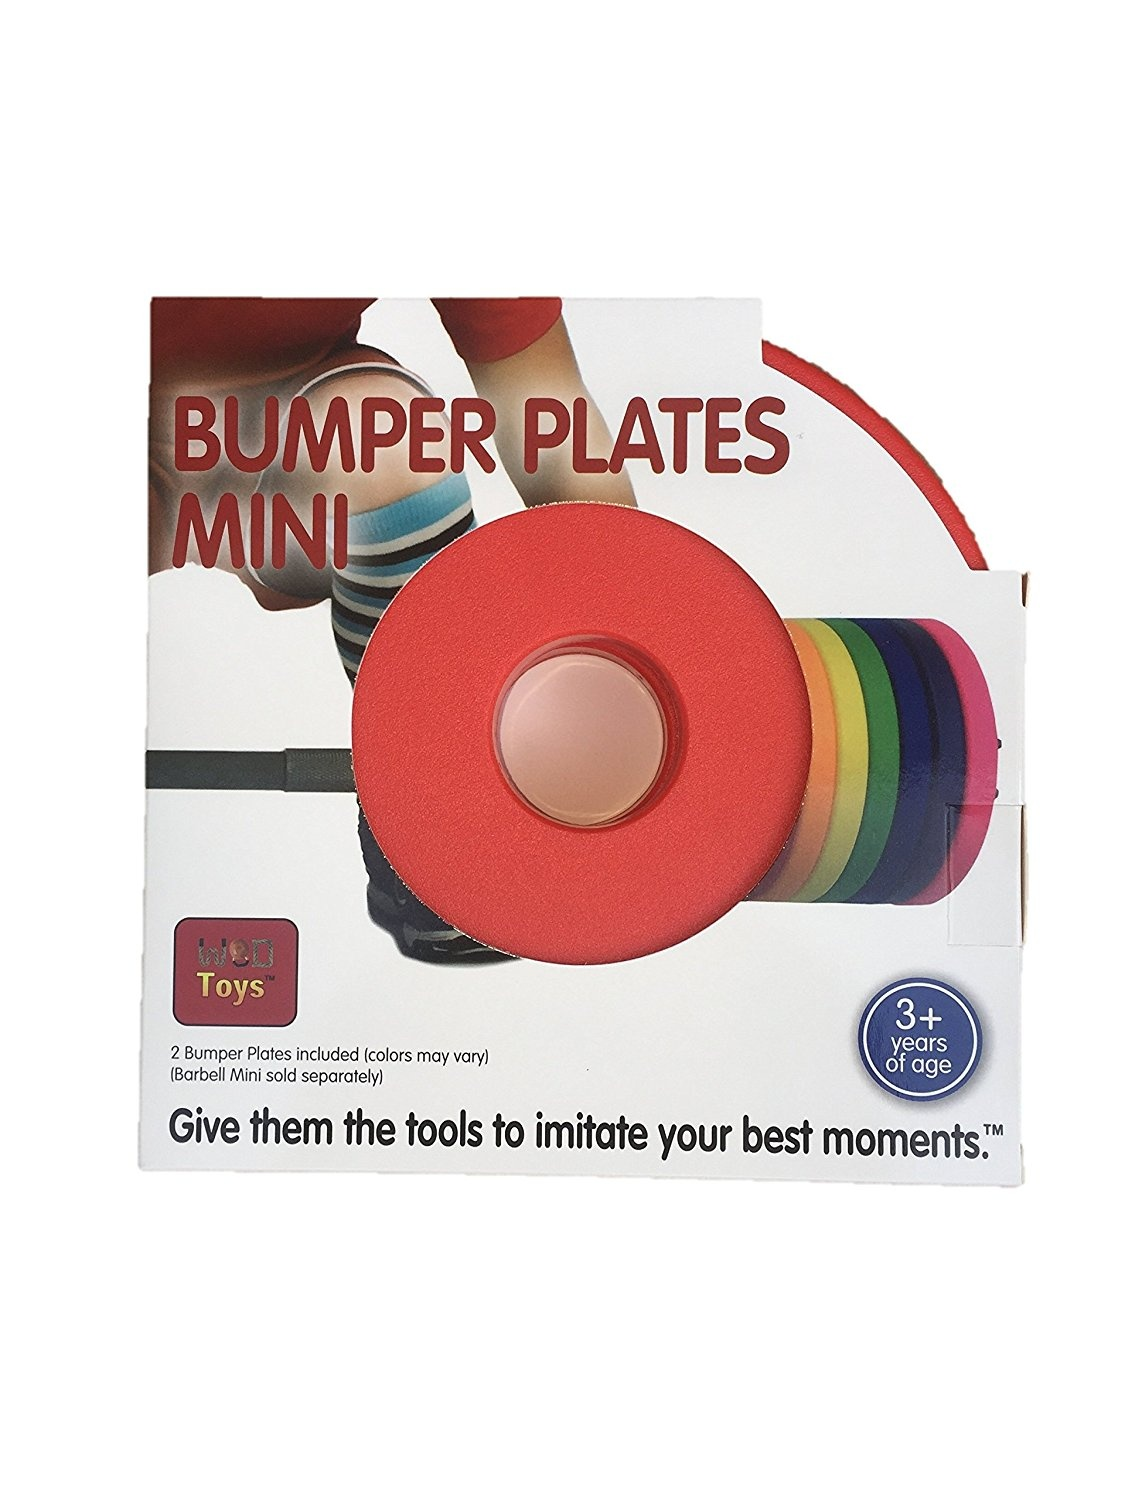 Add On Bumper Plates for The Barbell Mini WOD Toys Colored Bumper Plates Mini Safe Durable Fitness Toys for Kids